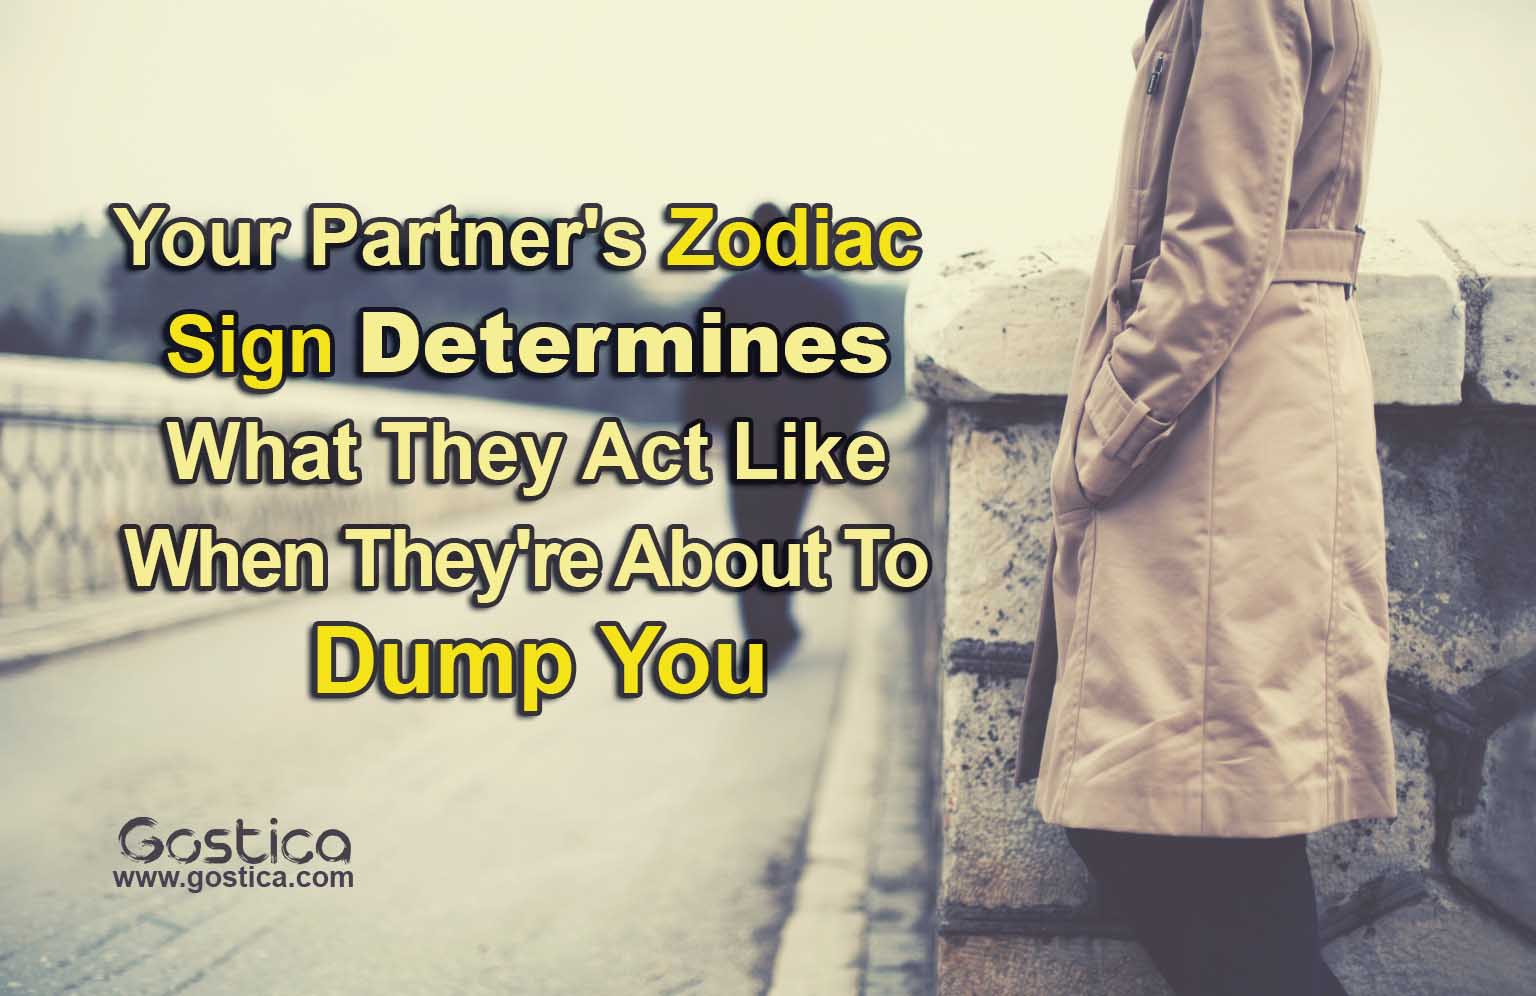 Your-Partners-Zodiac-Sign-Determines-What-They-Act-Like-When-Theyre-About-To-Dump-You.jpg